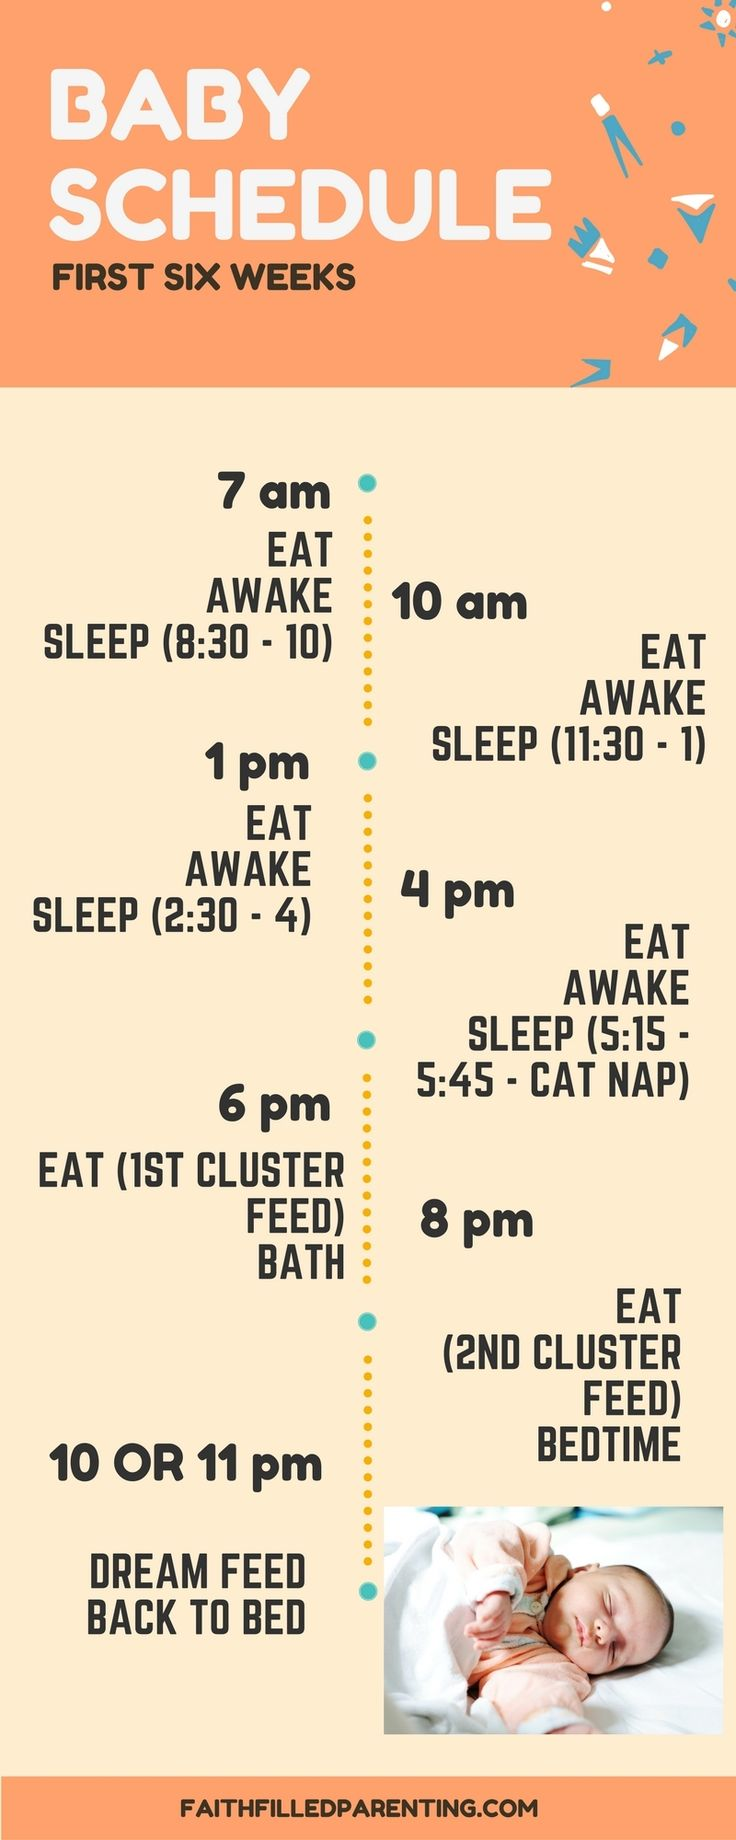 This sleeping and feeding routine is for babies between 9 months to 1 year. http://faithfilledparenting.com/4-baby-sleep-schedules-that-work/?utm_campaign=coschedule&utm_source=pinterest&utm_medium=Faith%20Filled%20Parenting&utm_content=4%20Baby%20Sleep%20Schedules%20That%20Work